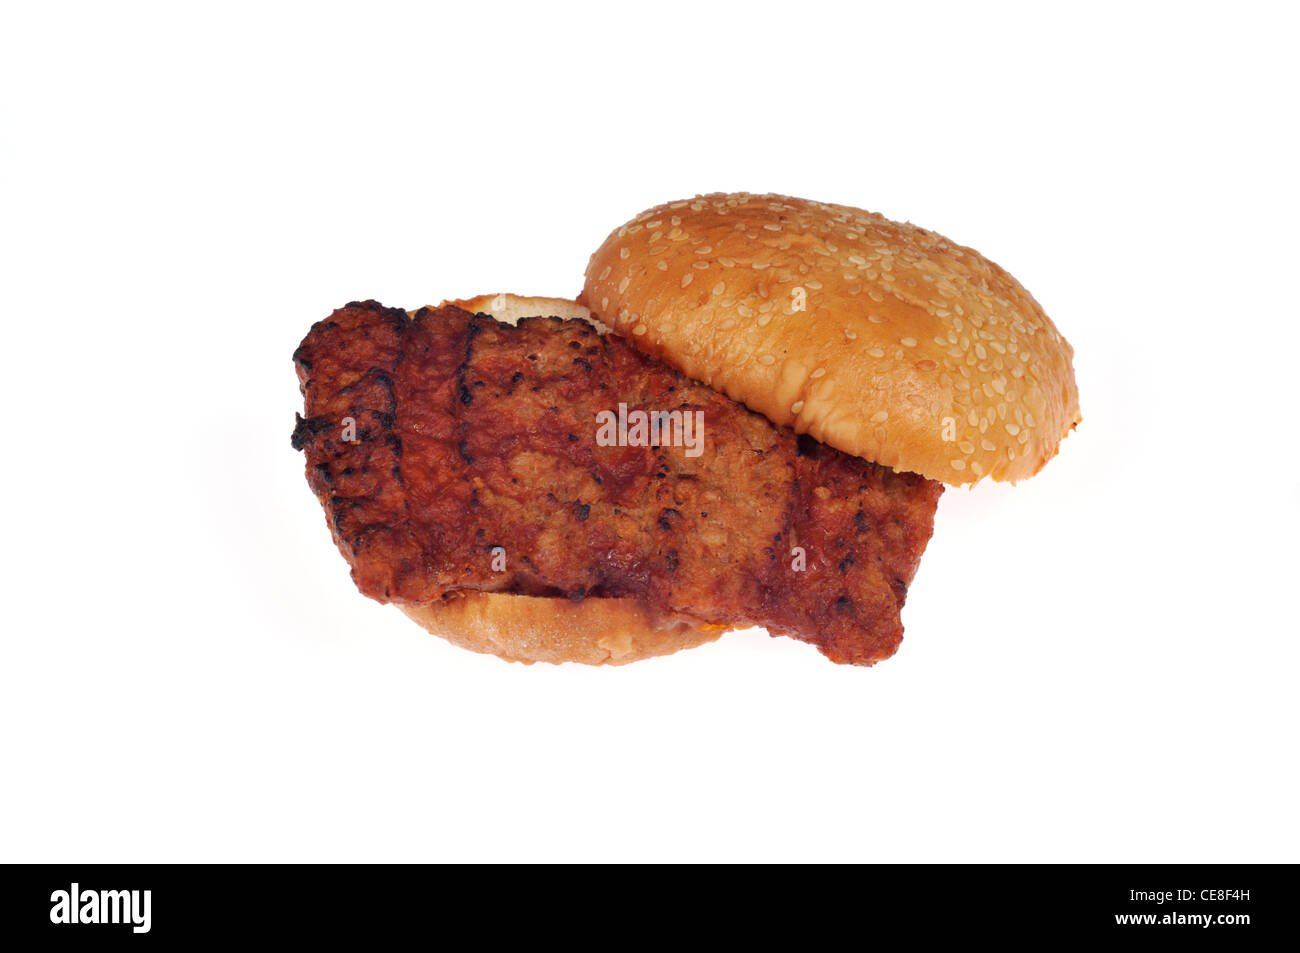 Cooked open BBQ rib pork sandwich on sesame seed roll on white background cut out. - Stock Image